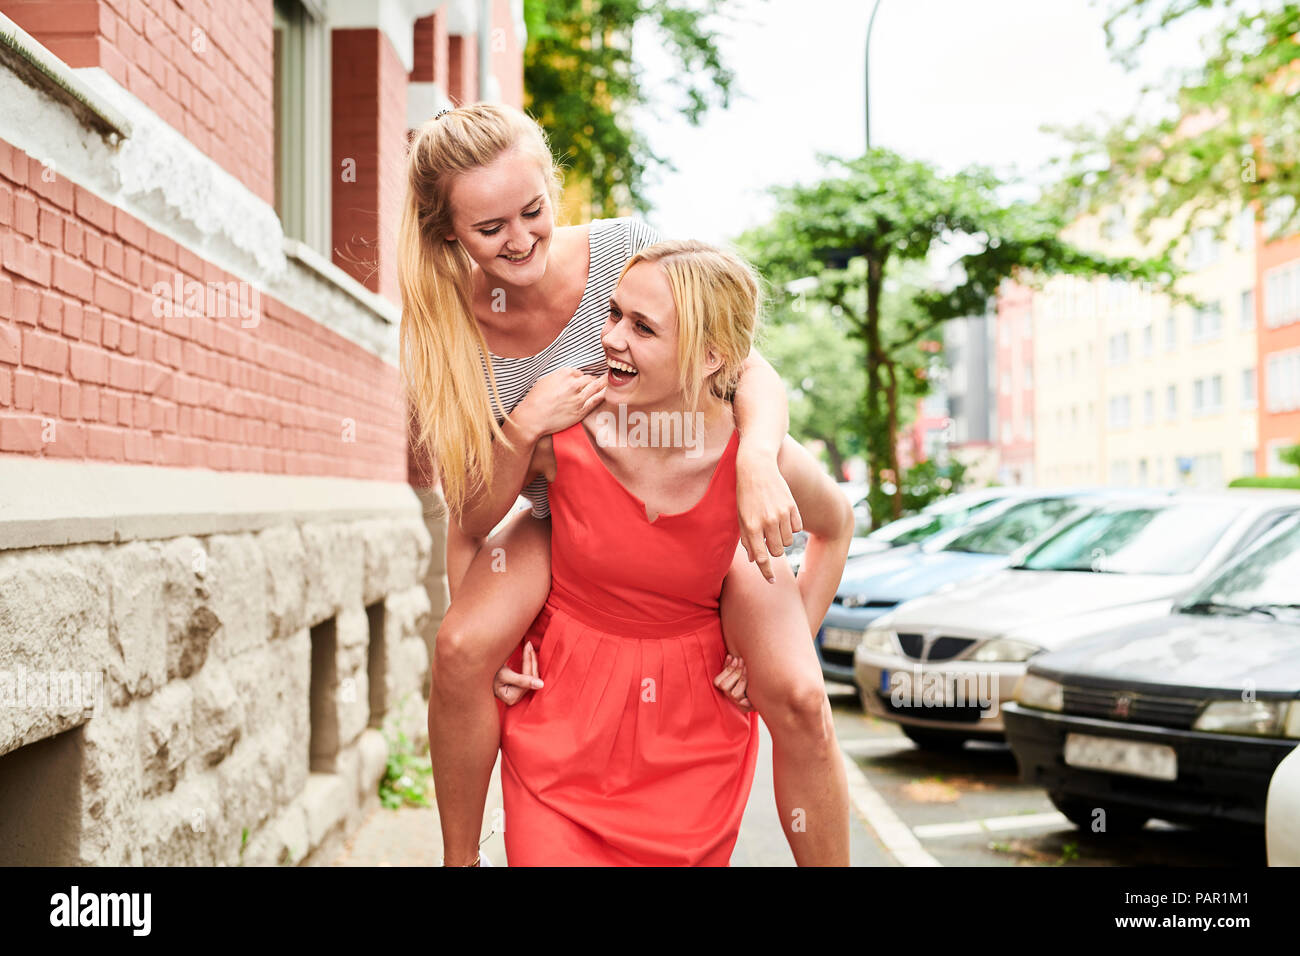 Happy young woman giving friend piggyback ride in the city - Stock Image